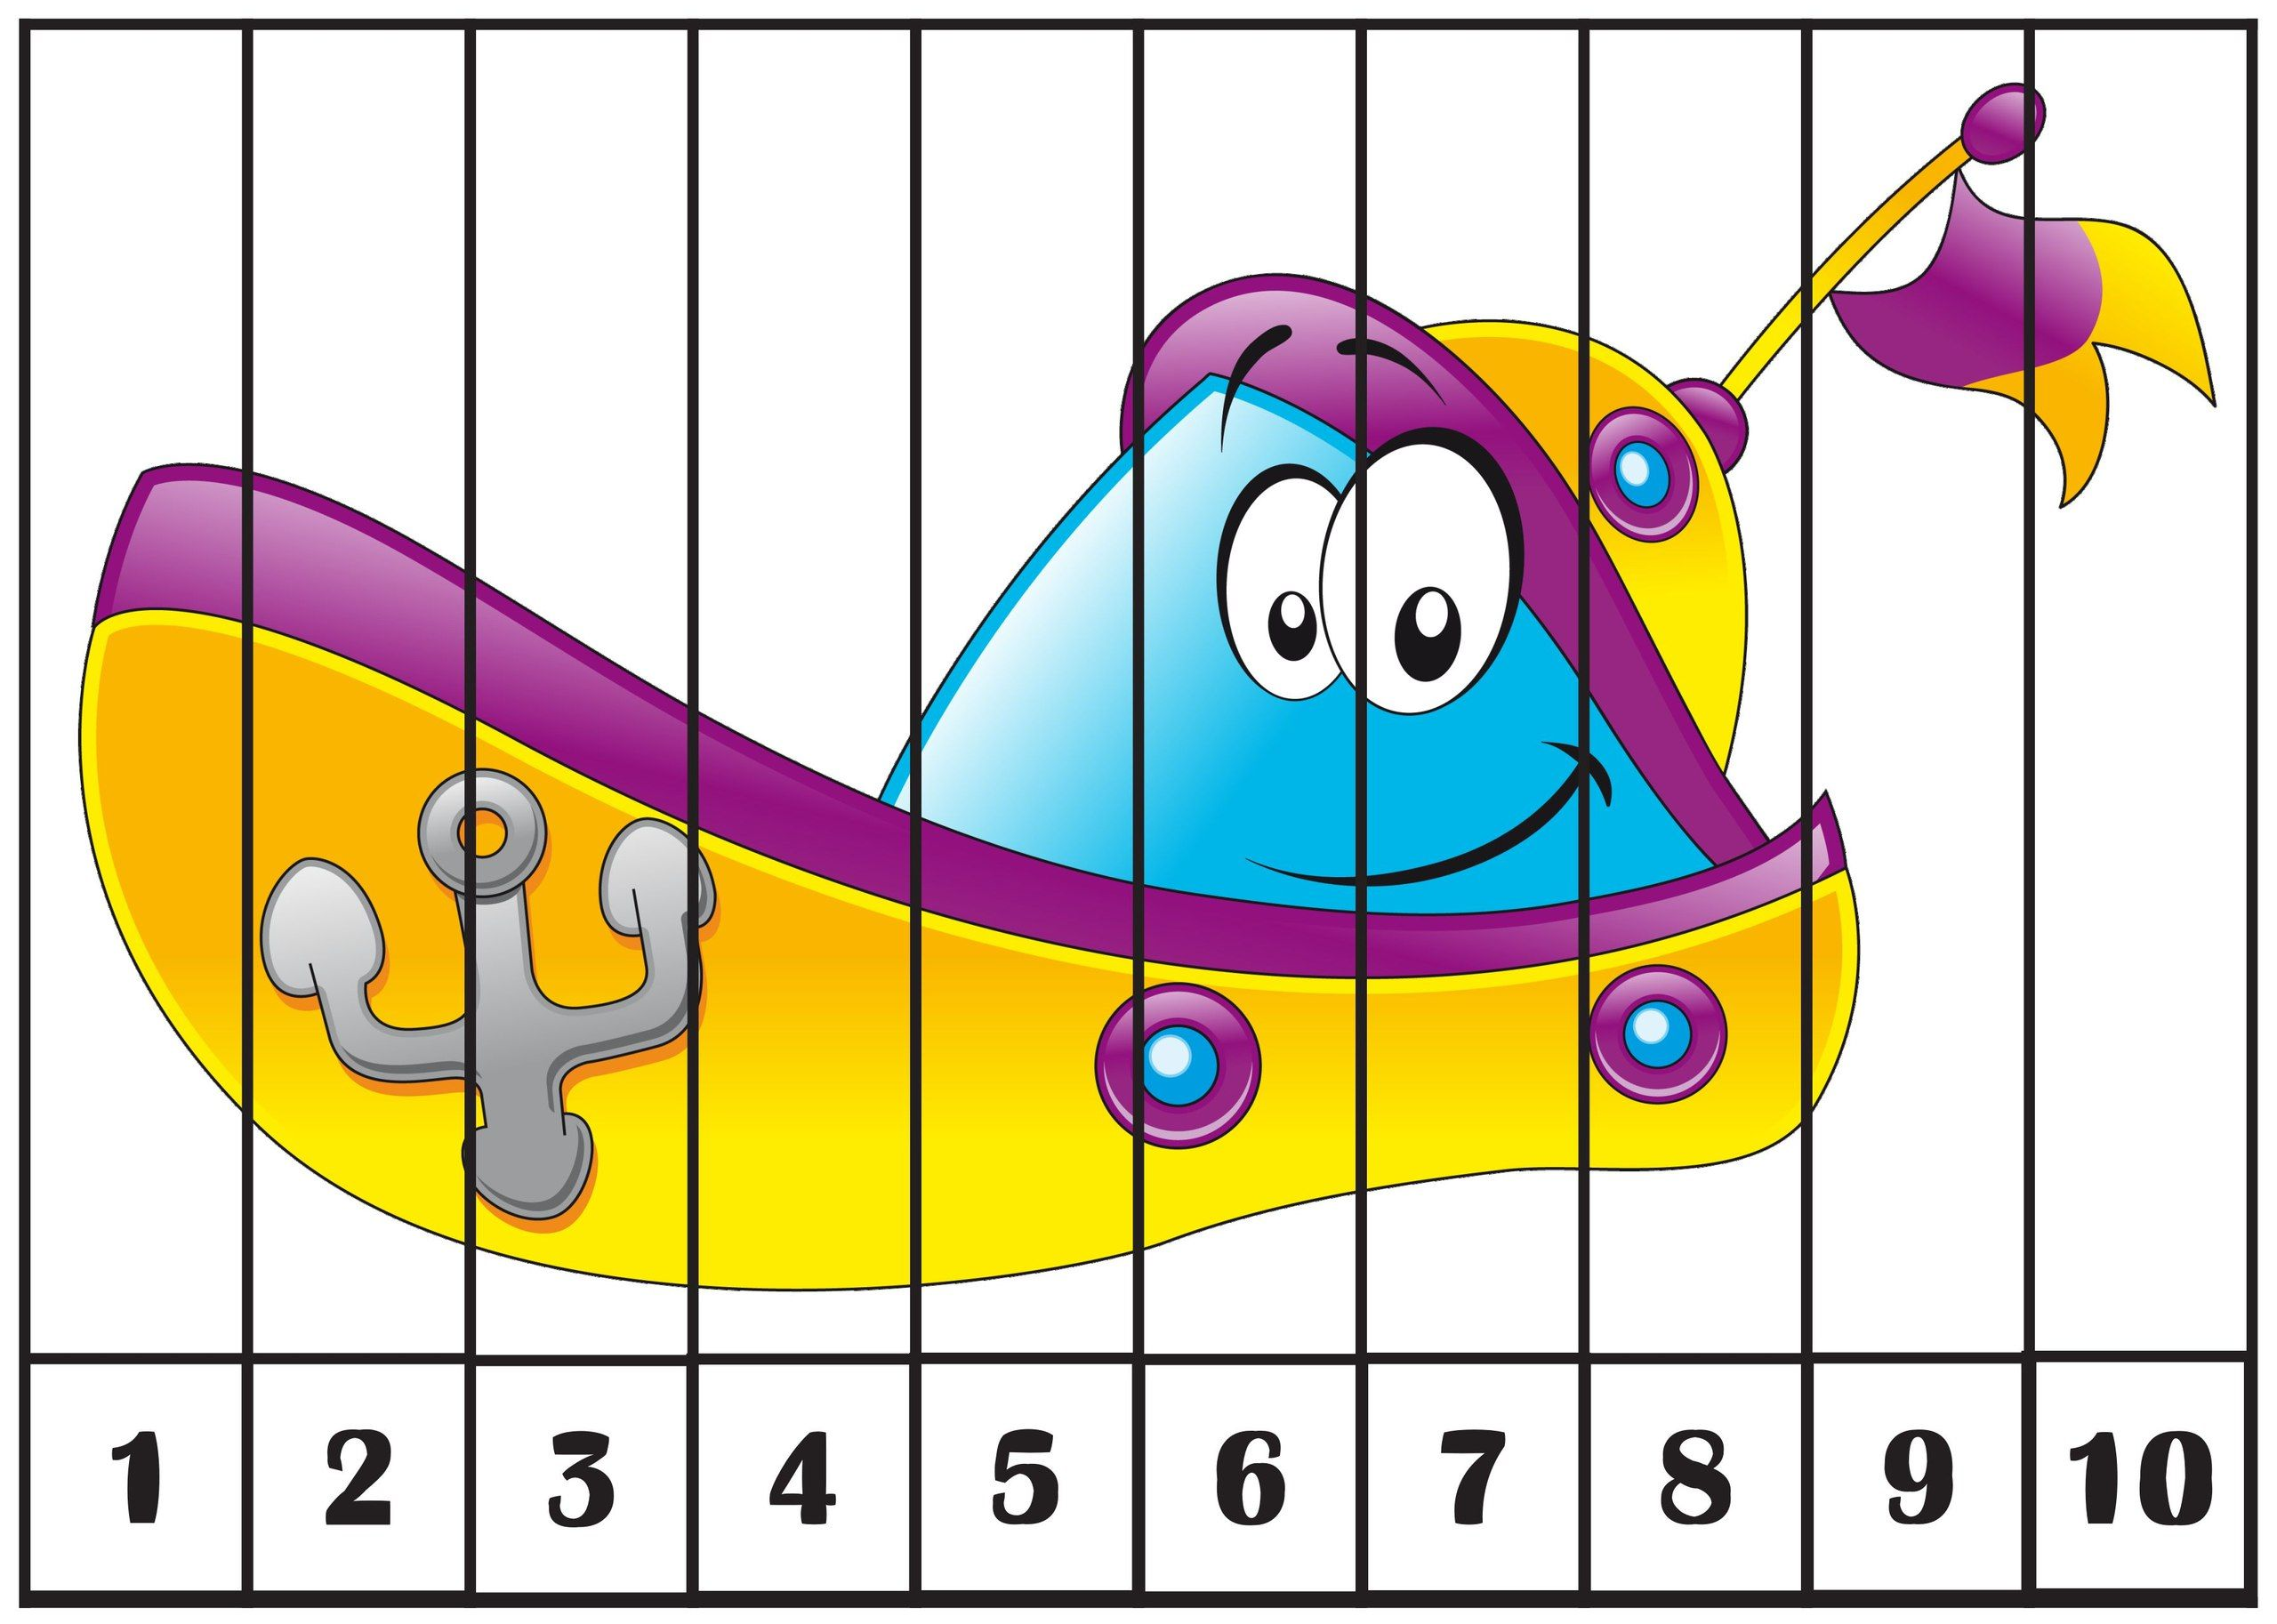 Pin By Prekautism On Number Games Amp Activities For Children With Autism